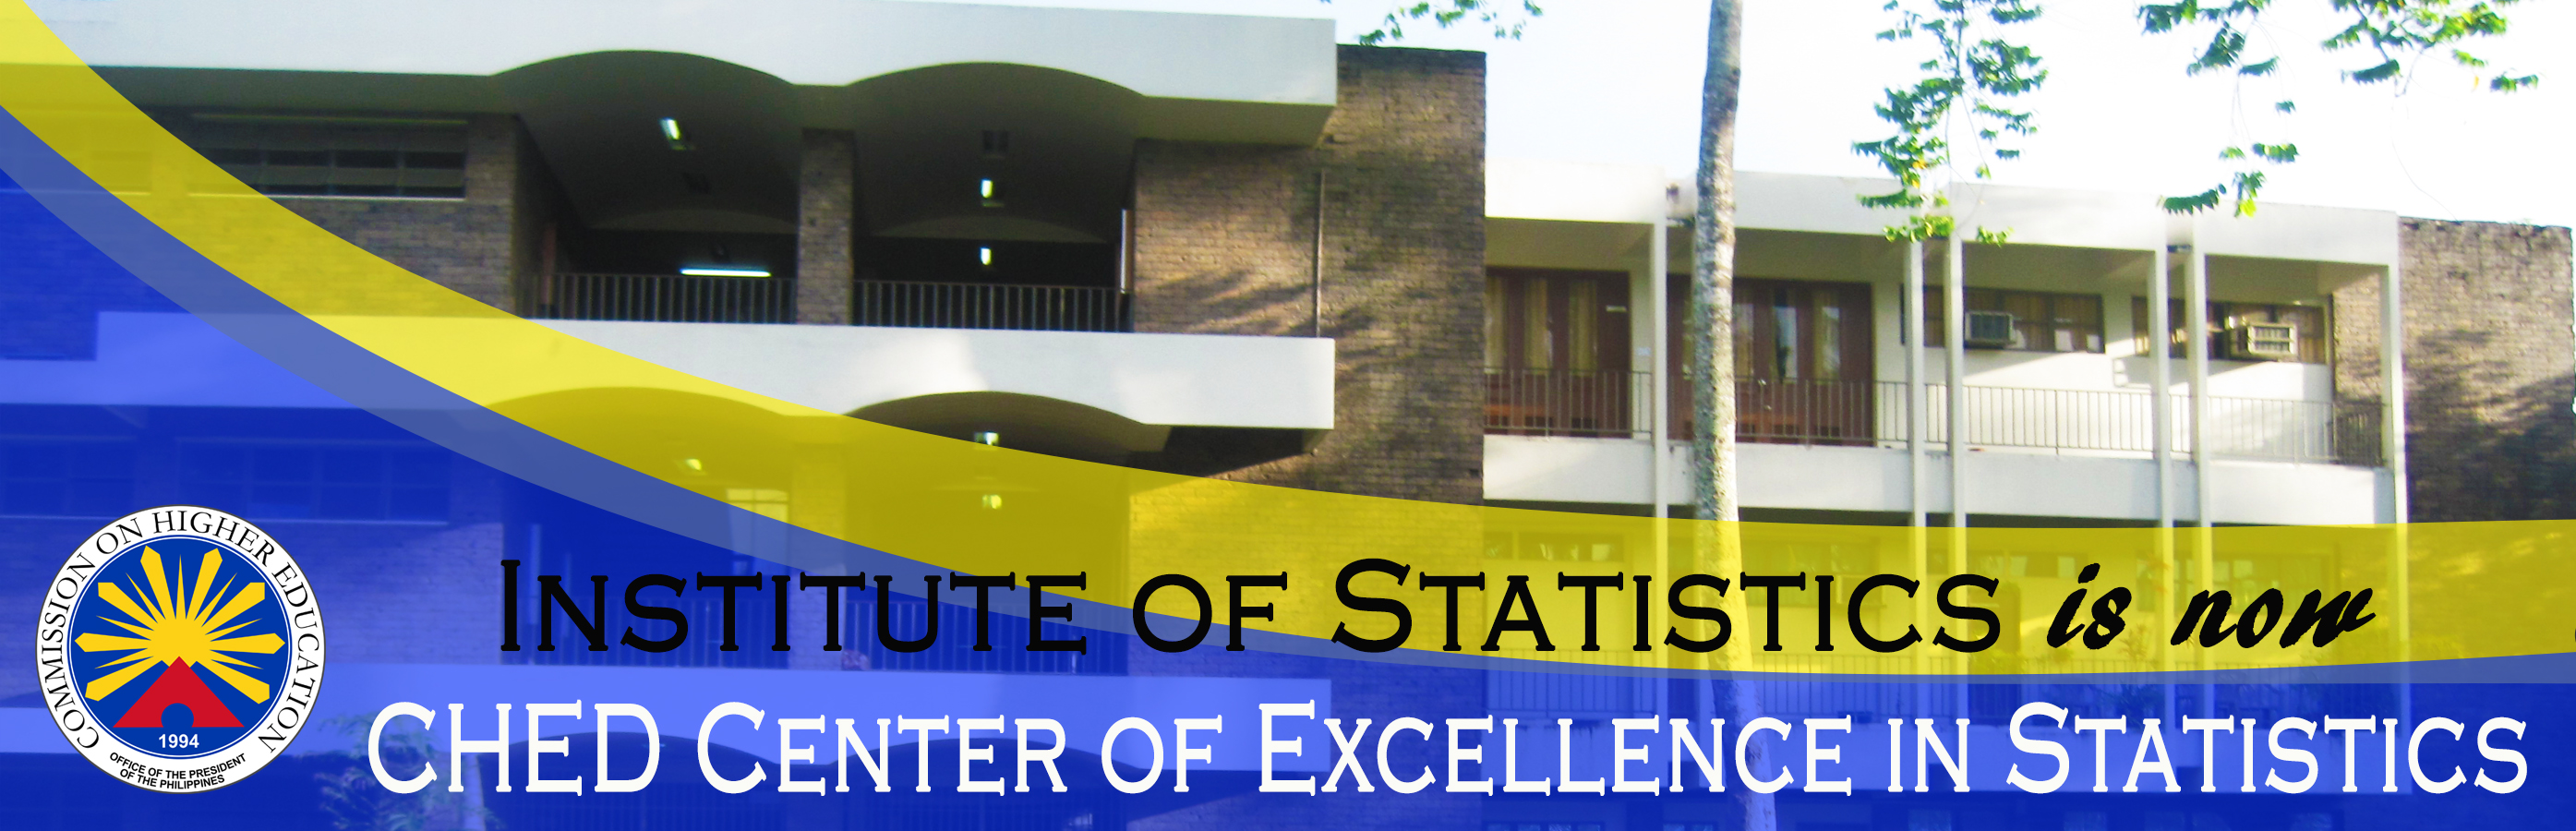 INSTAT: Now CHED Center of Excellence in Statistics